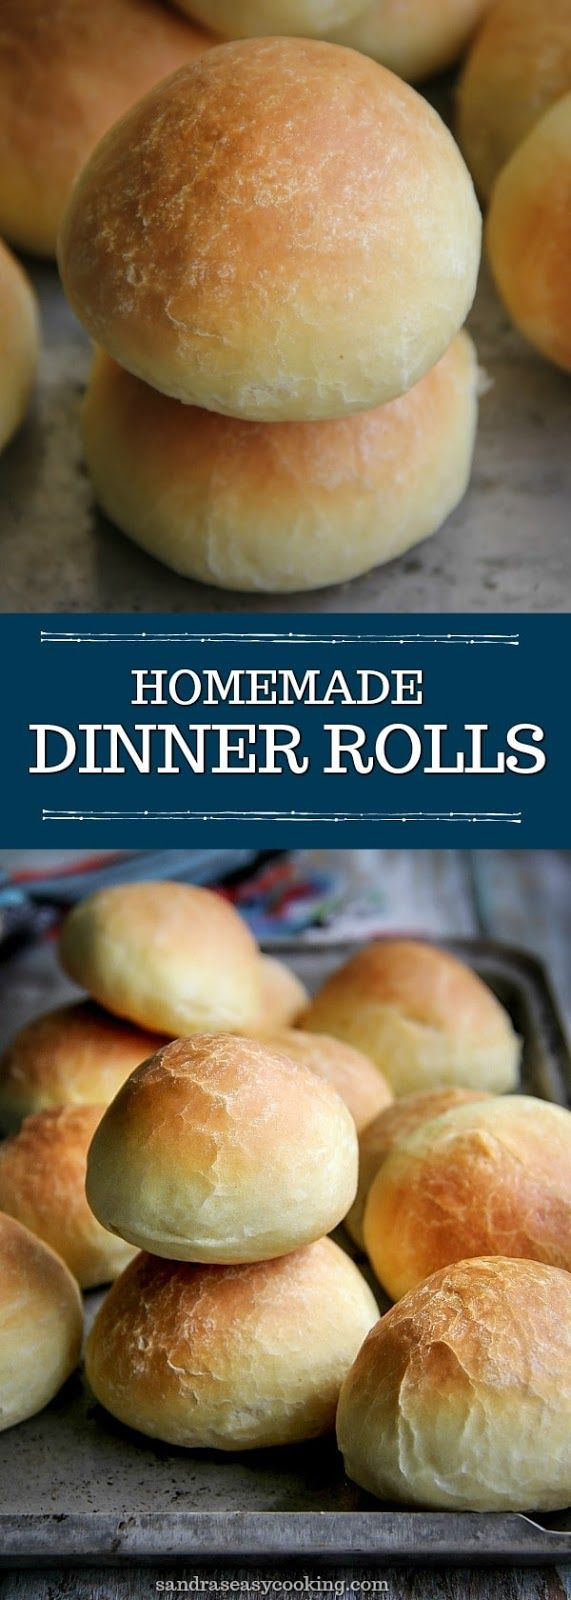 Simple, Easy and Delicious #recipe for Homemade Dinner Rolls. #bread #food #baking